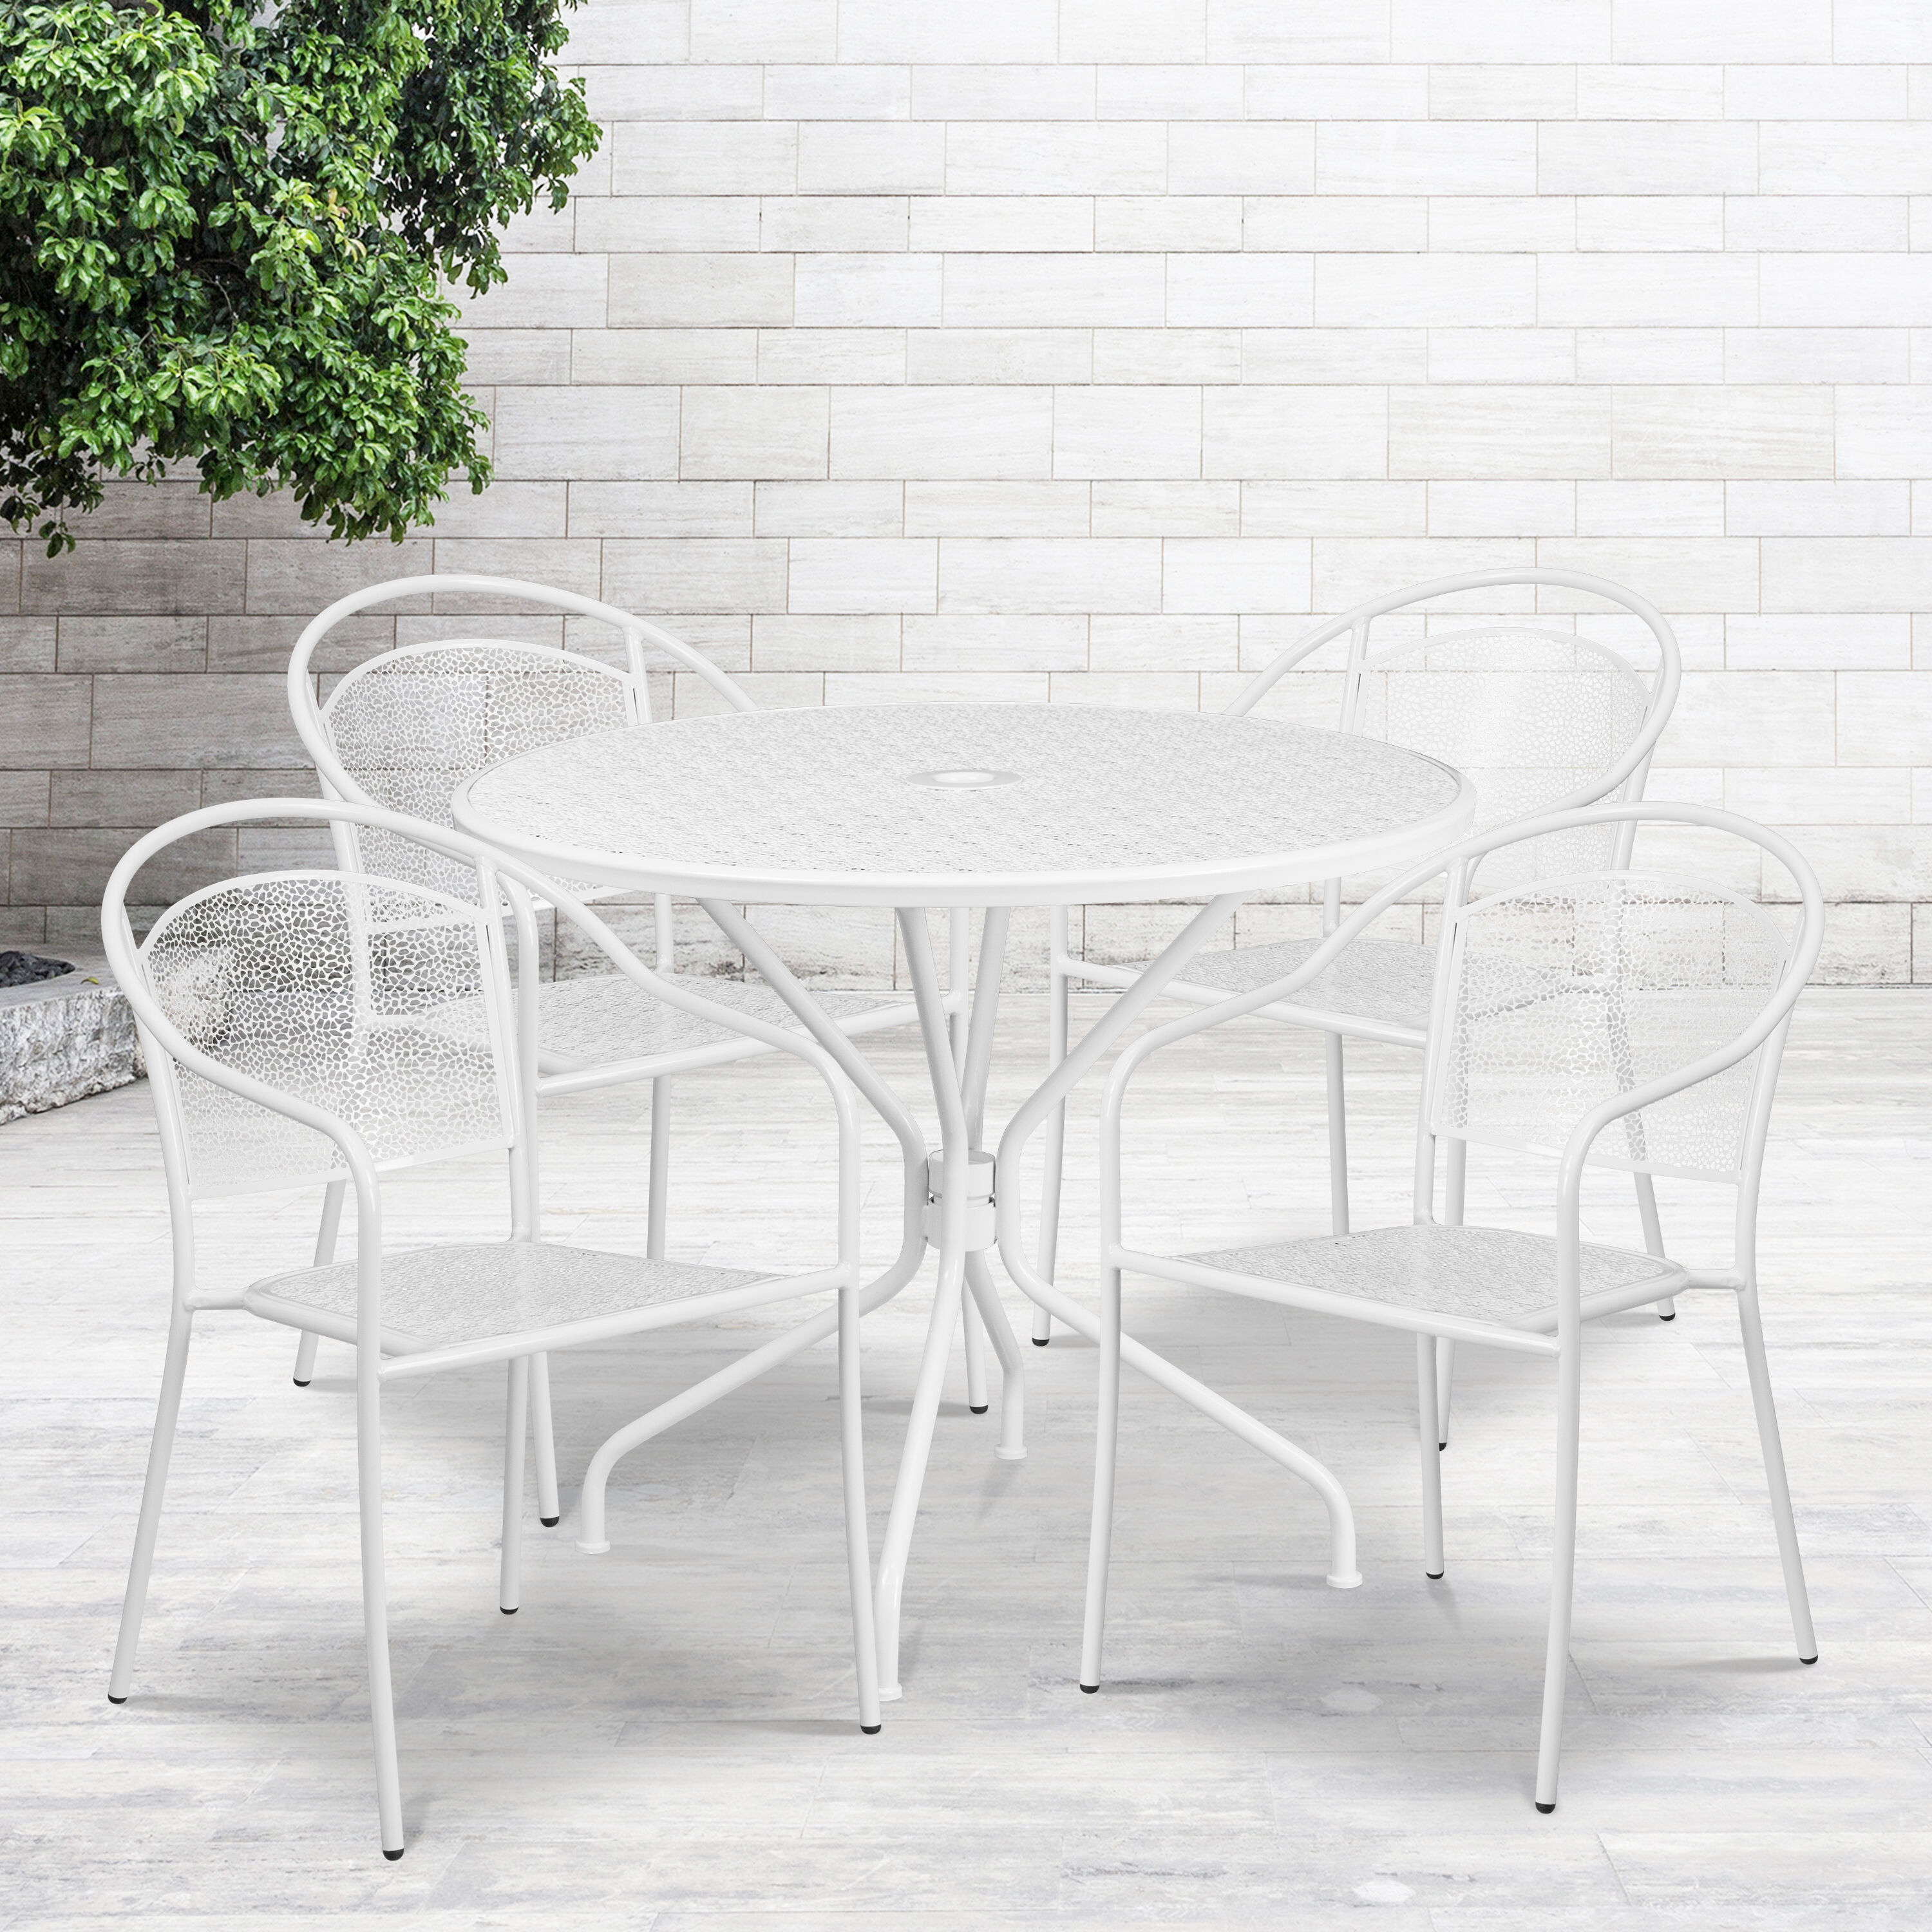 commercial grade 35 25 round white indoor outdoor steel patio table set with 4 round back chairs